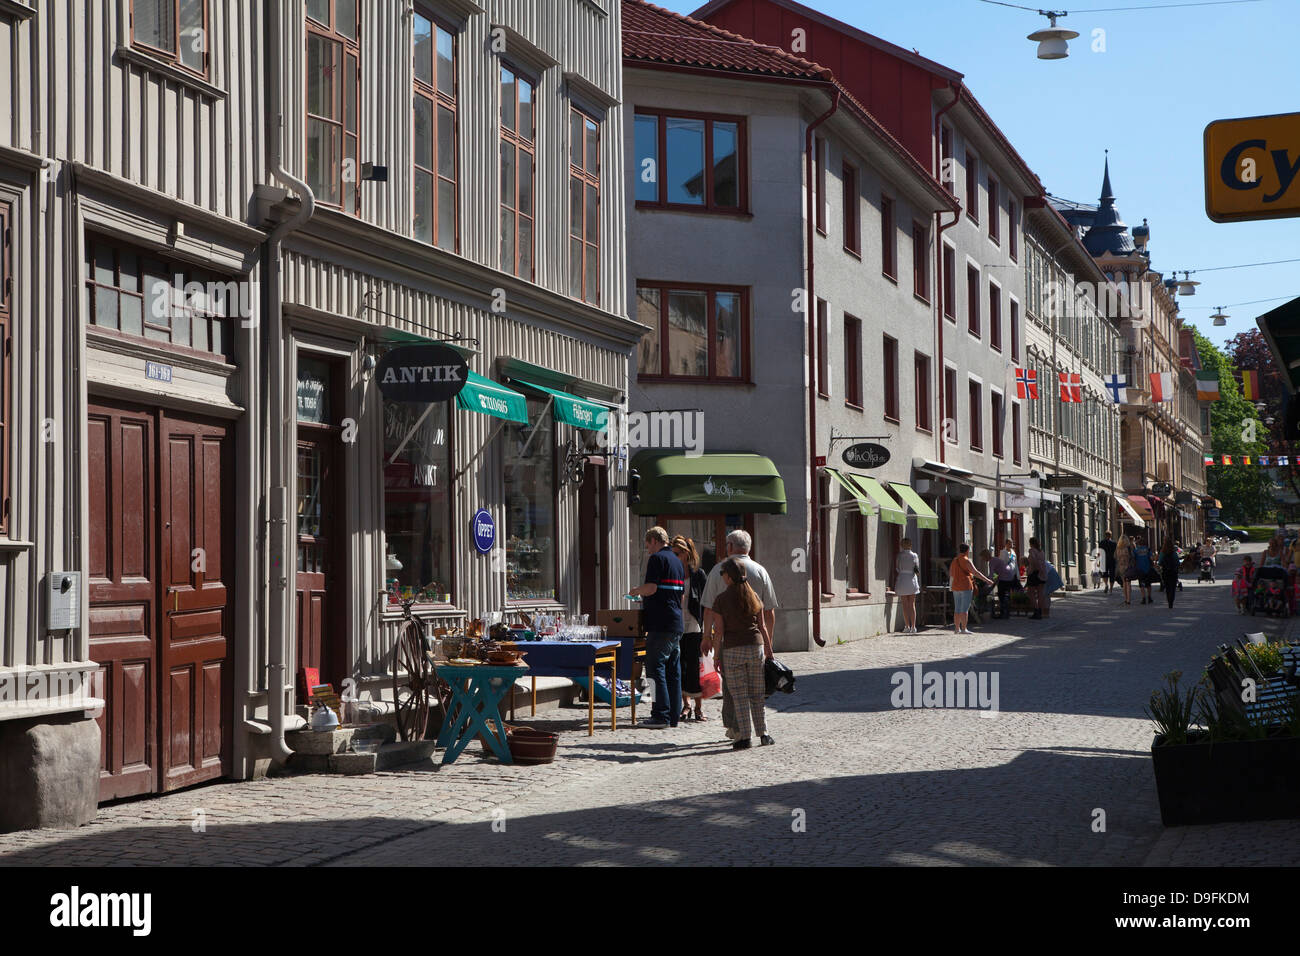 Old merchant houses in Gamla Haga district, Gothenburg, Sweden, Scandinavia - Stock Image